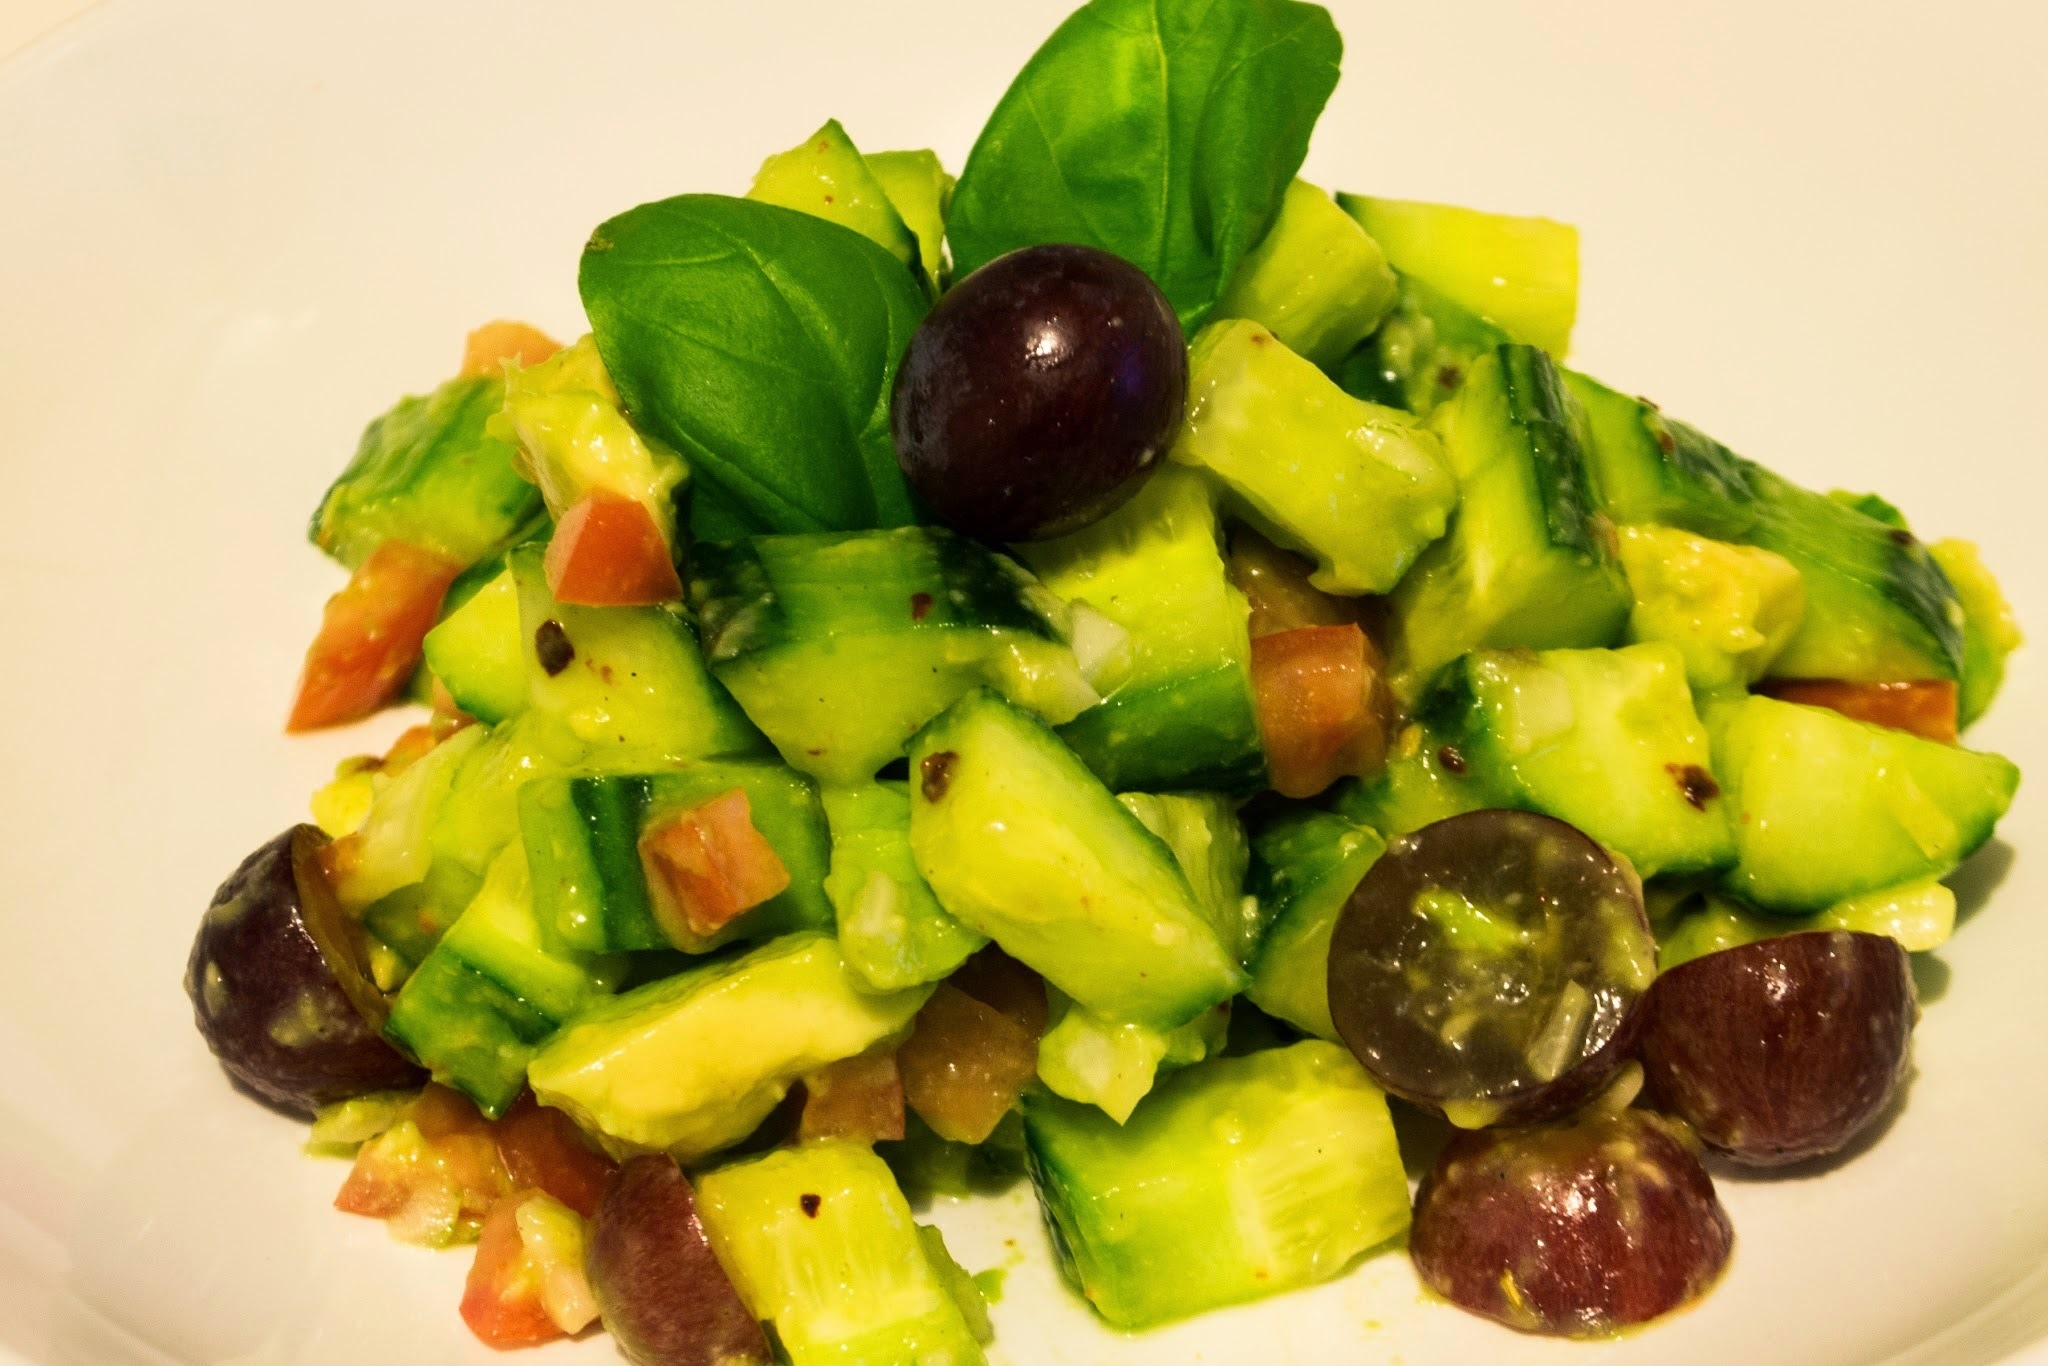 Avocado.Gurke.Chili.Salat.